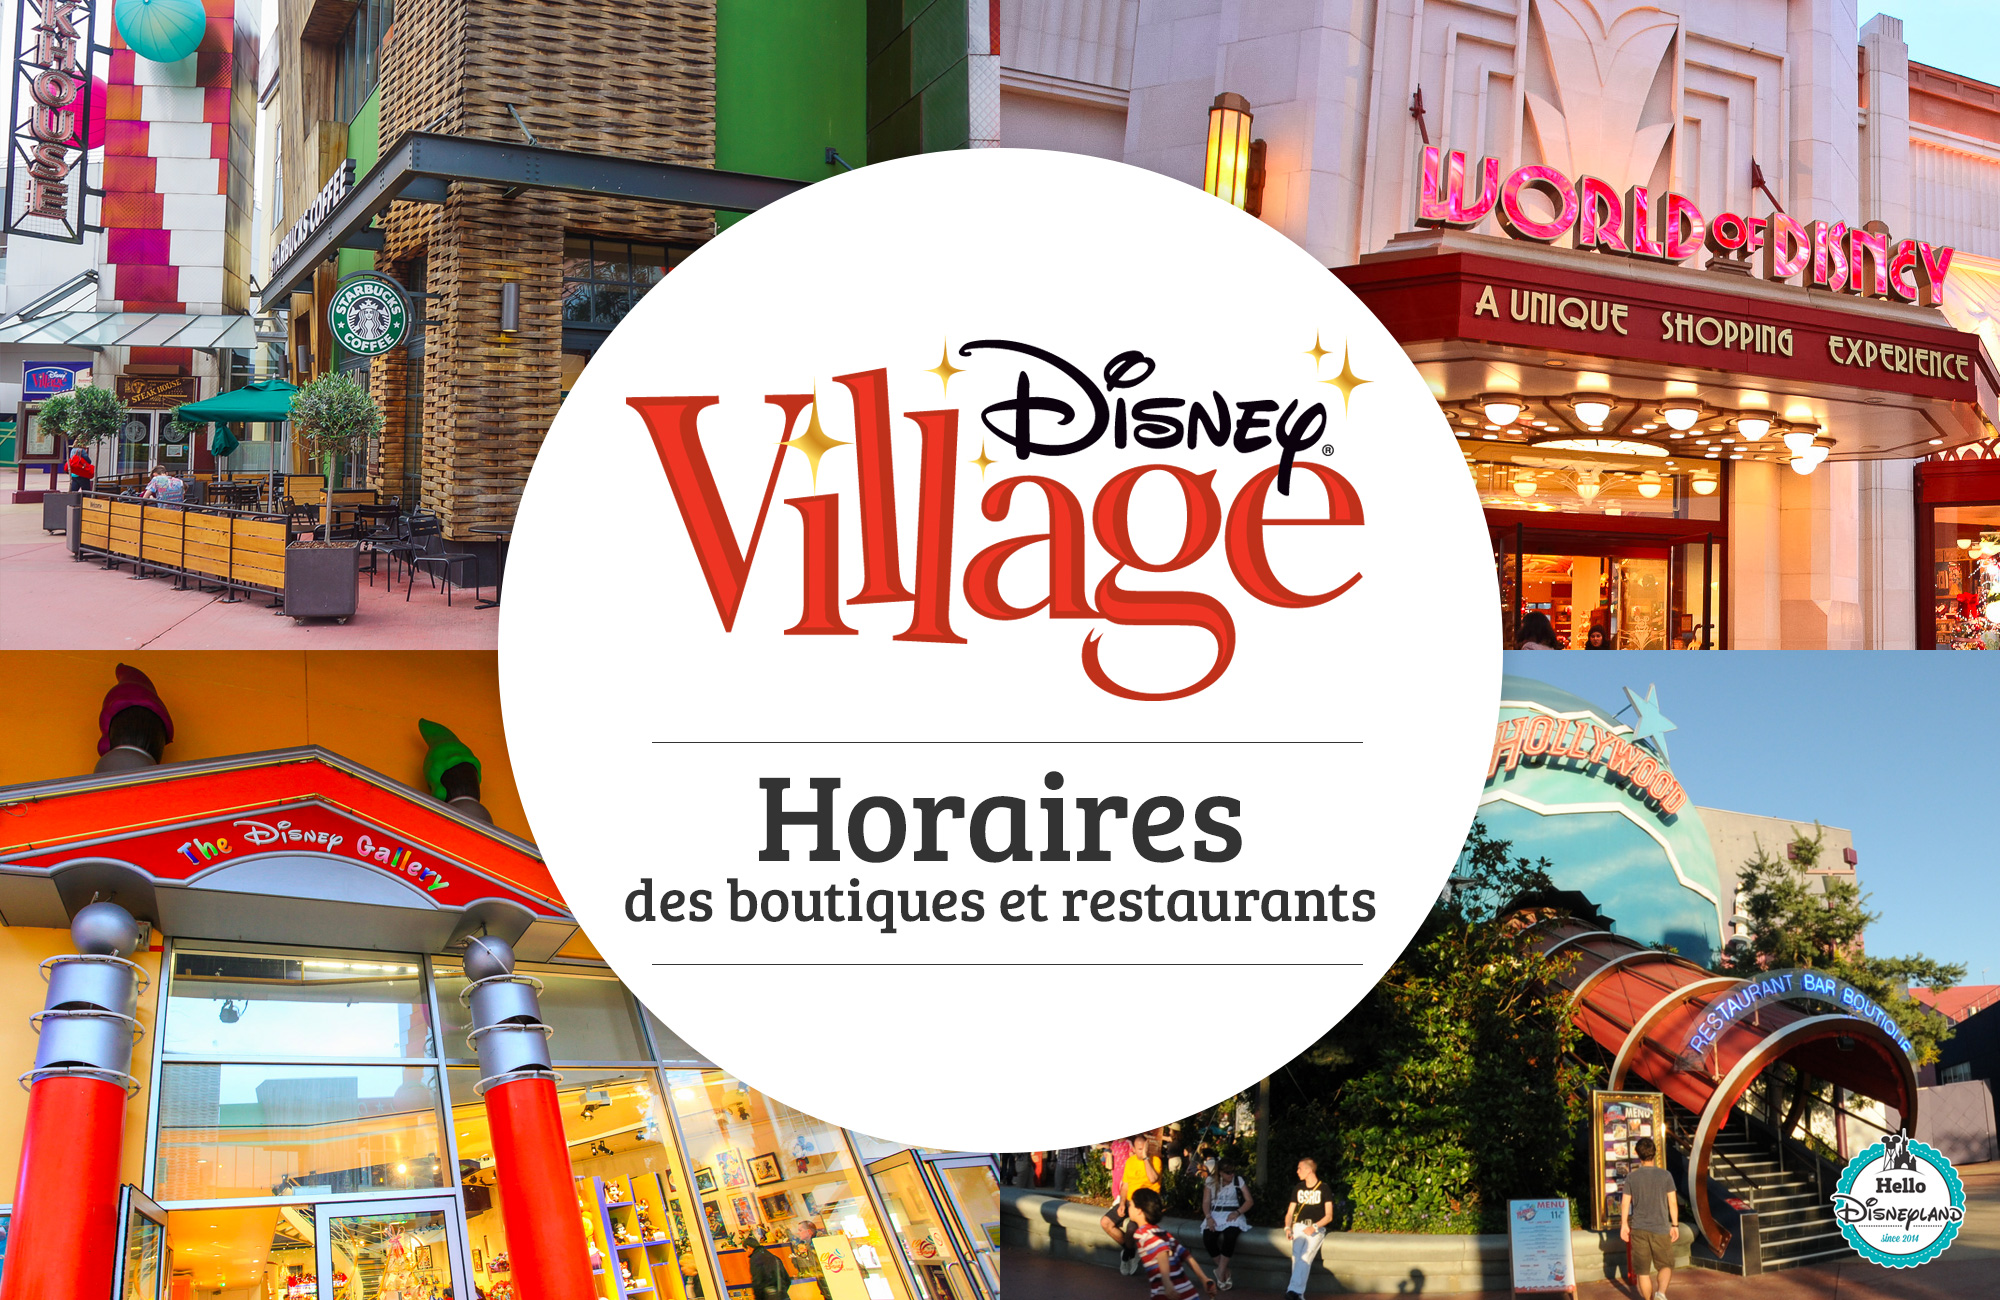 hello disneyland le blog n 1 sur disneyland paris horaires des boutiques et restaurants du. Black Bedroom Furniture Sets. Home Design Ideas